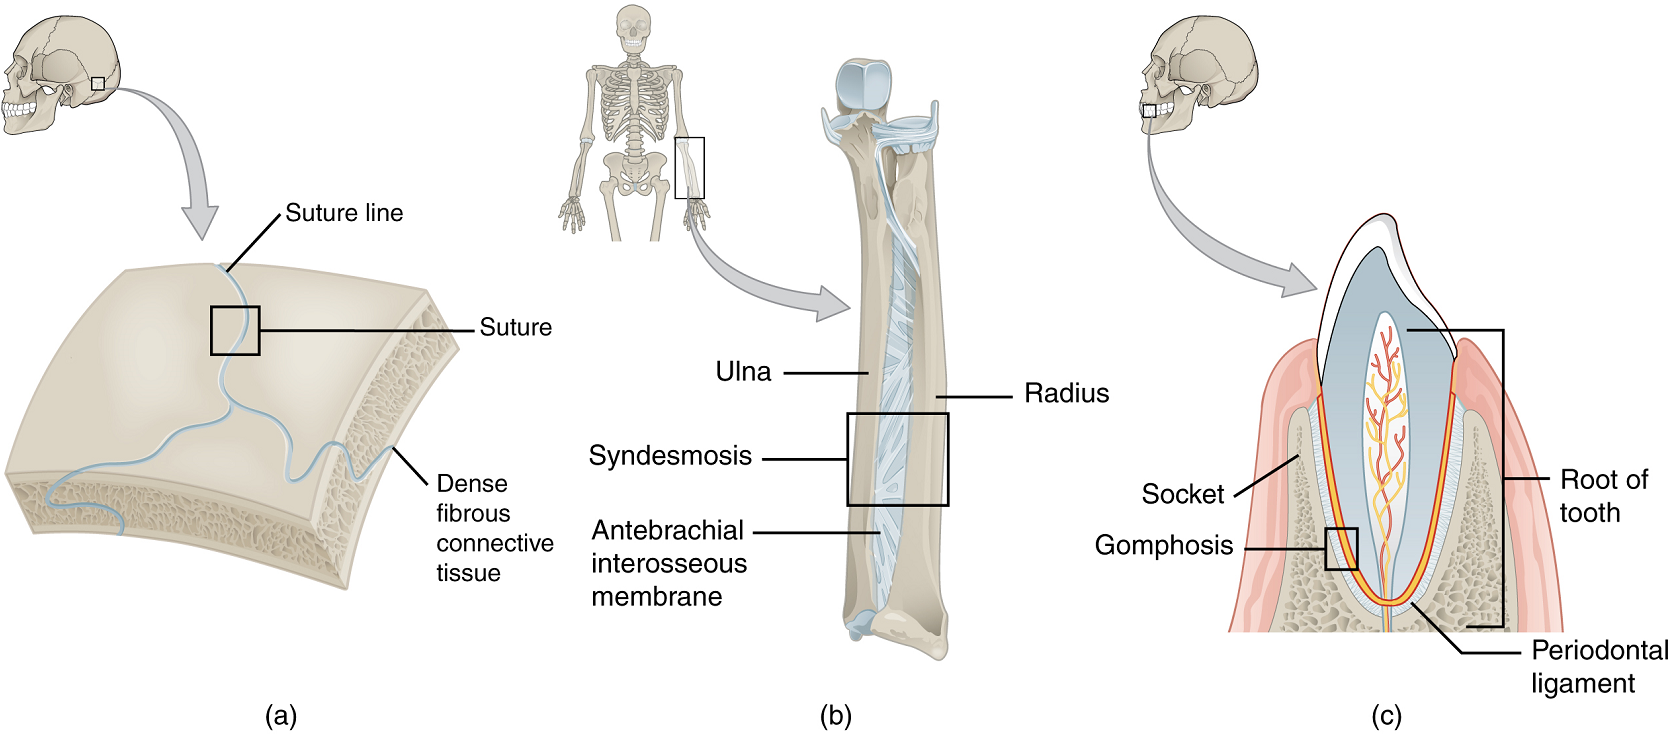 Unit 13 Joints Douglas College Human Anatomy Physiology I 2nd Ed A place in the body where two bones are directly joined together by cartilage (= strong tissue…. unit 13 joints douglas college human